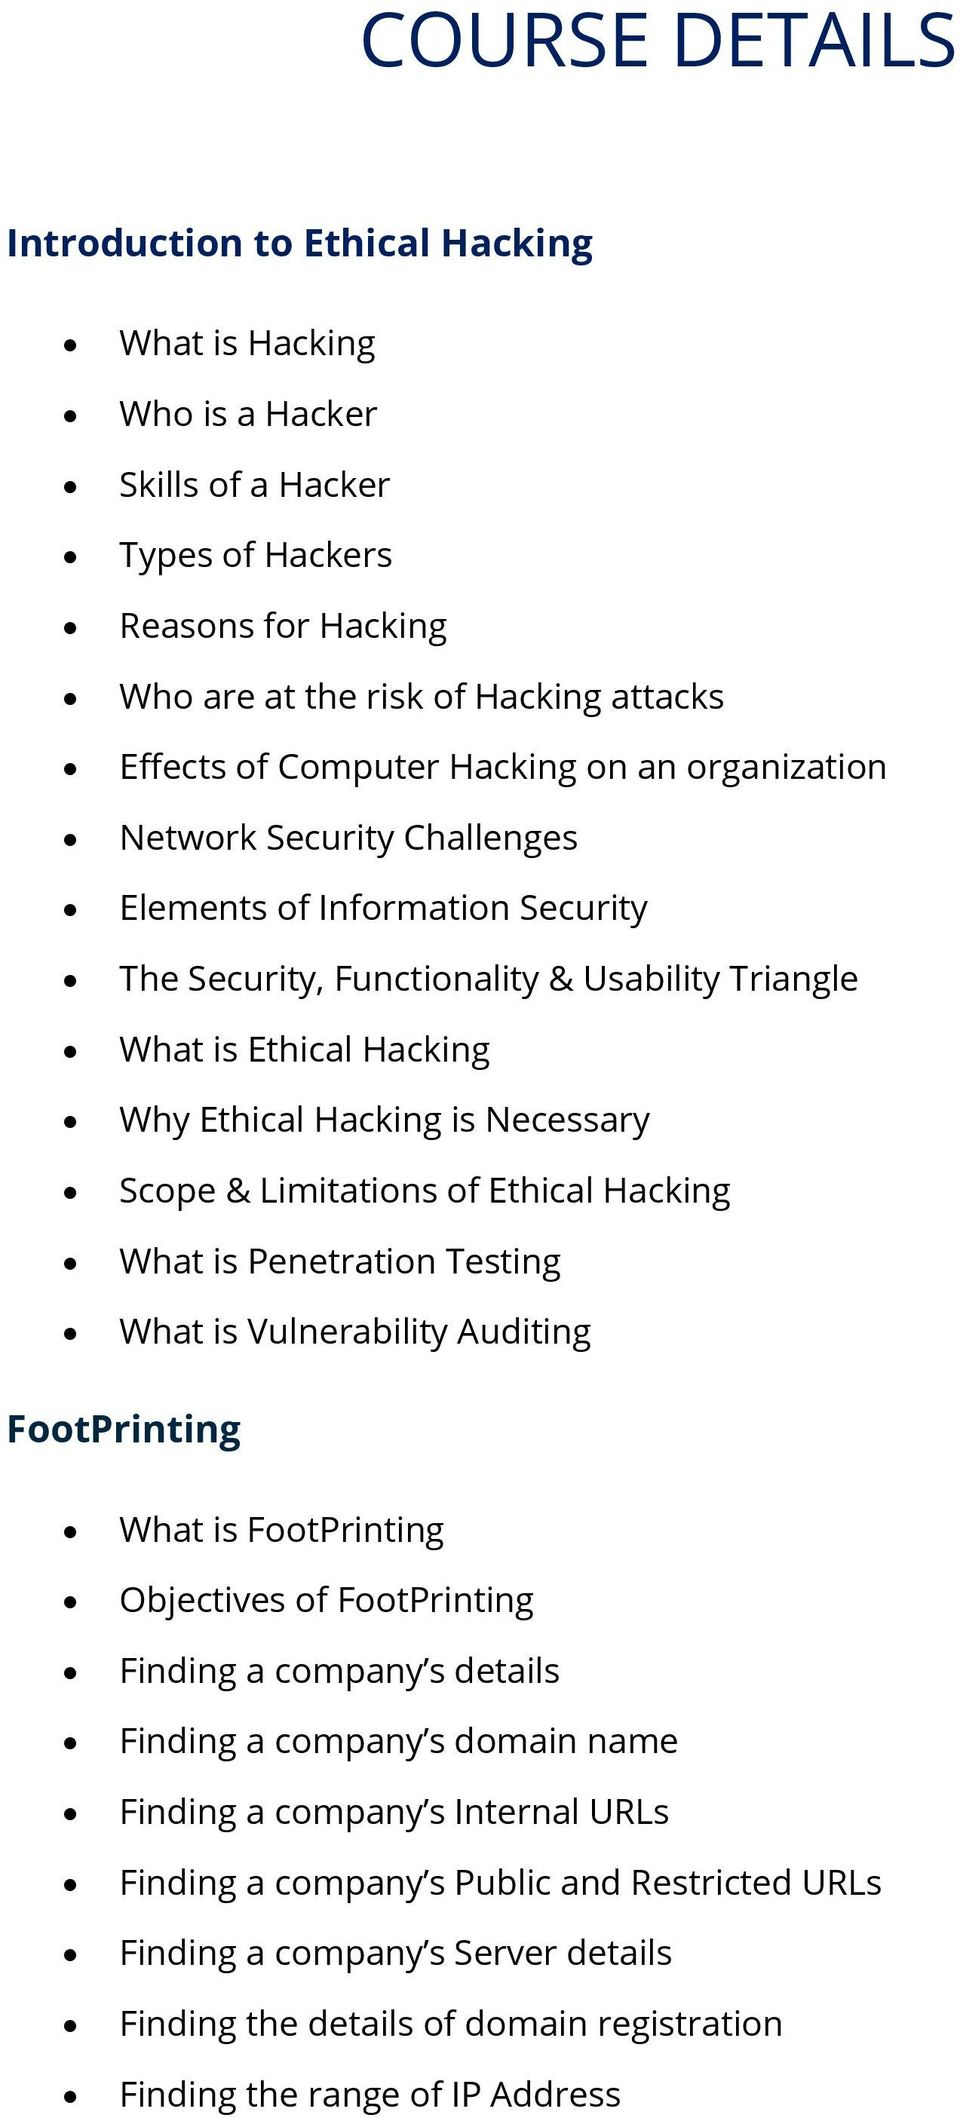 Scpe & Limitatins f Ethical Hacking What is Penetratin Testing What is Vulnerability Auditing FtPrinting What is FtPrinting Objectives f FtPrinting Finding a cmpany s details Finding a